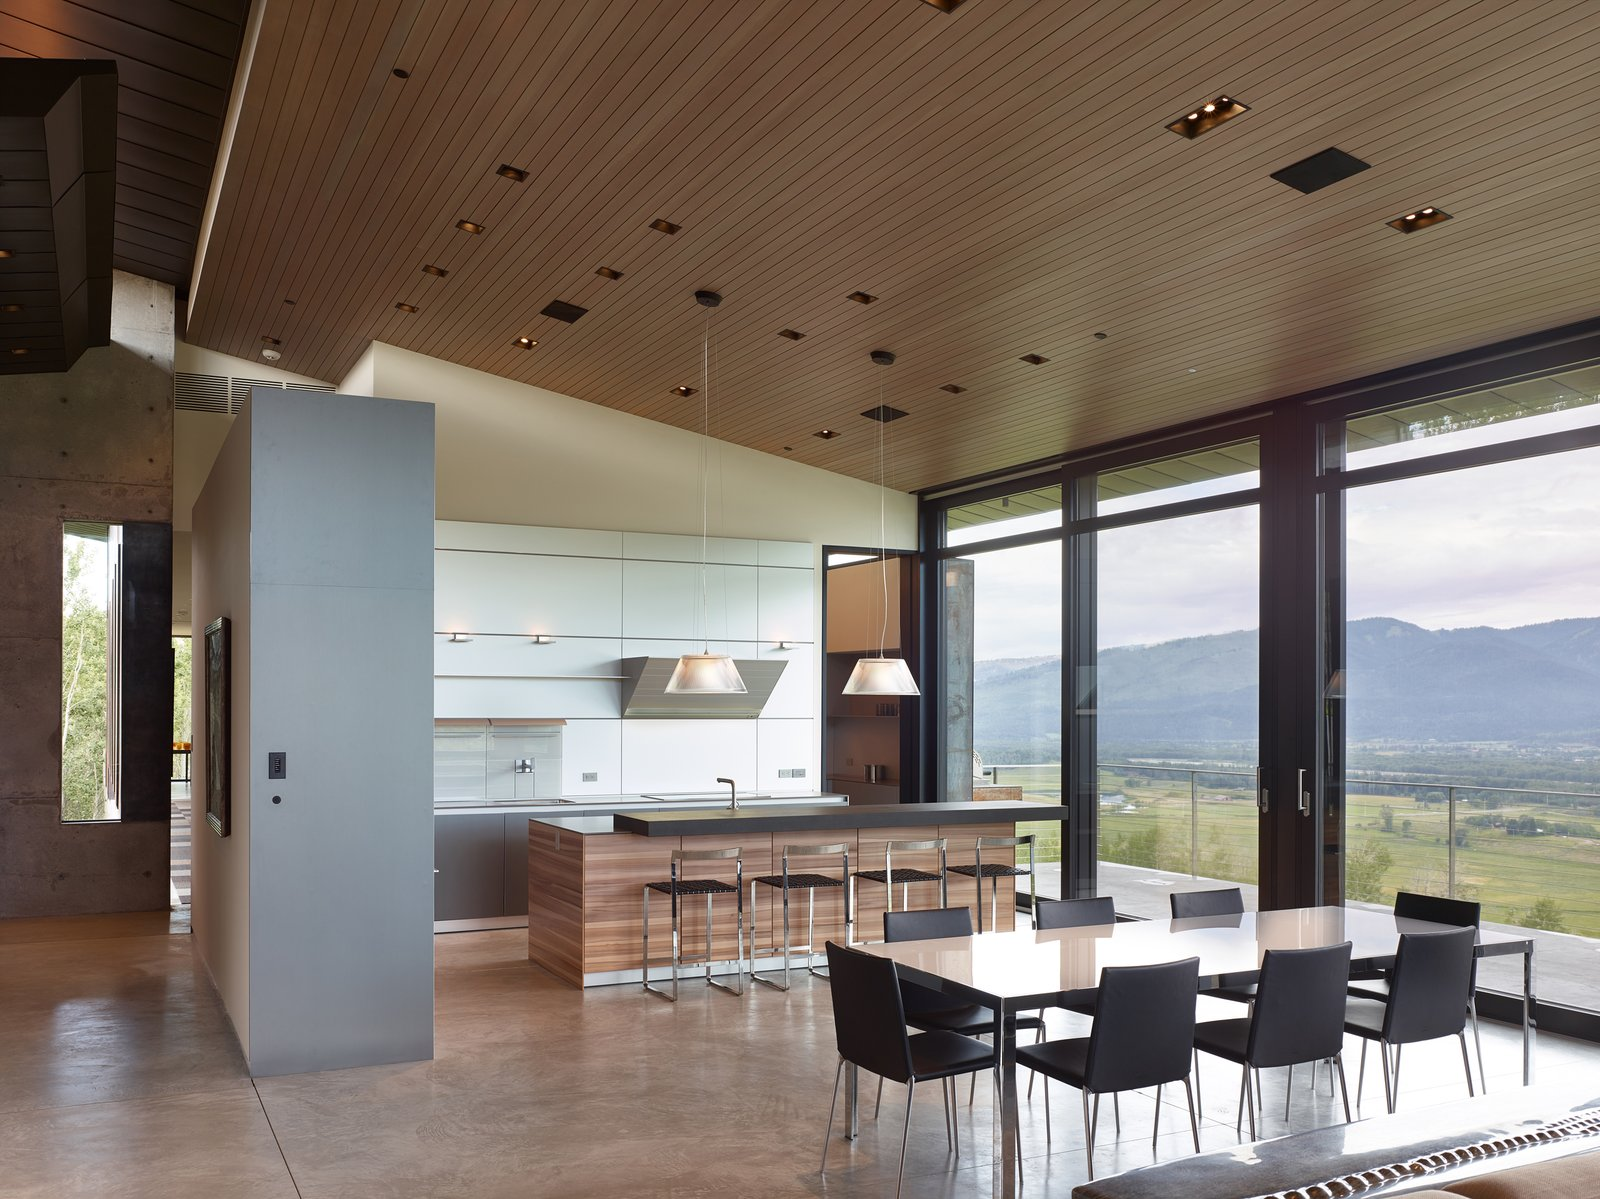 The dining area sits between the open concept kitchen and living room.